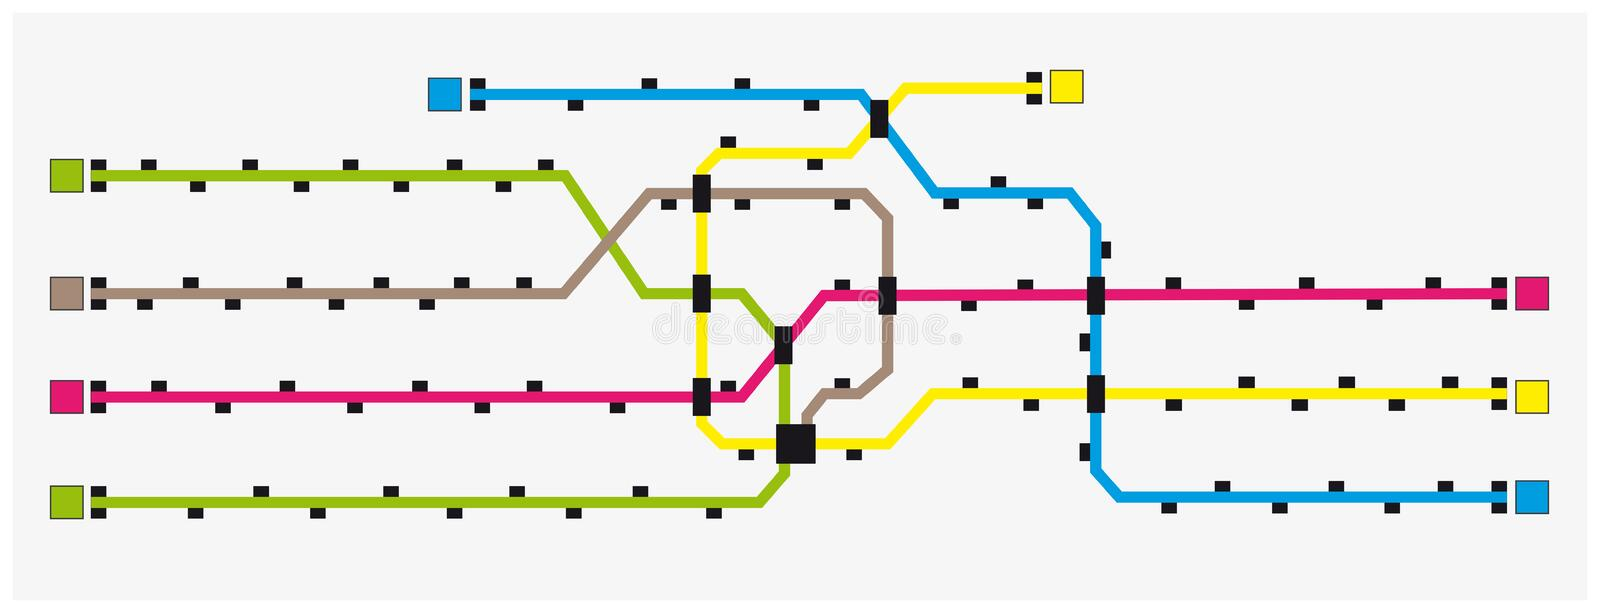 Imaginary colored subway map with stations royalty free illustration